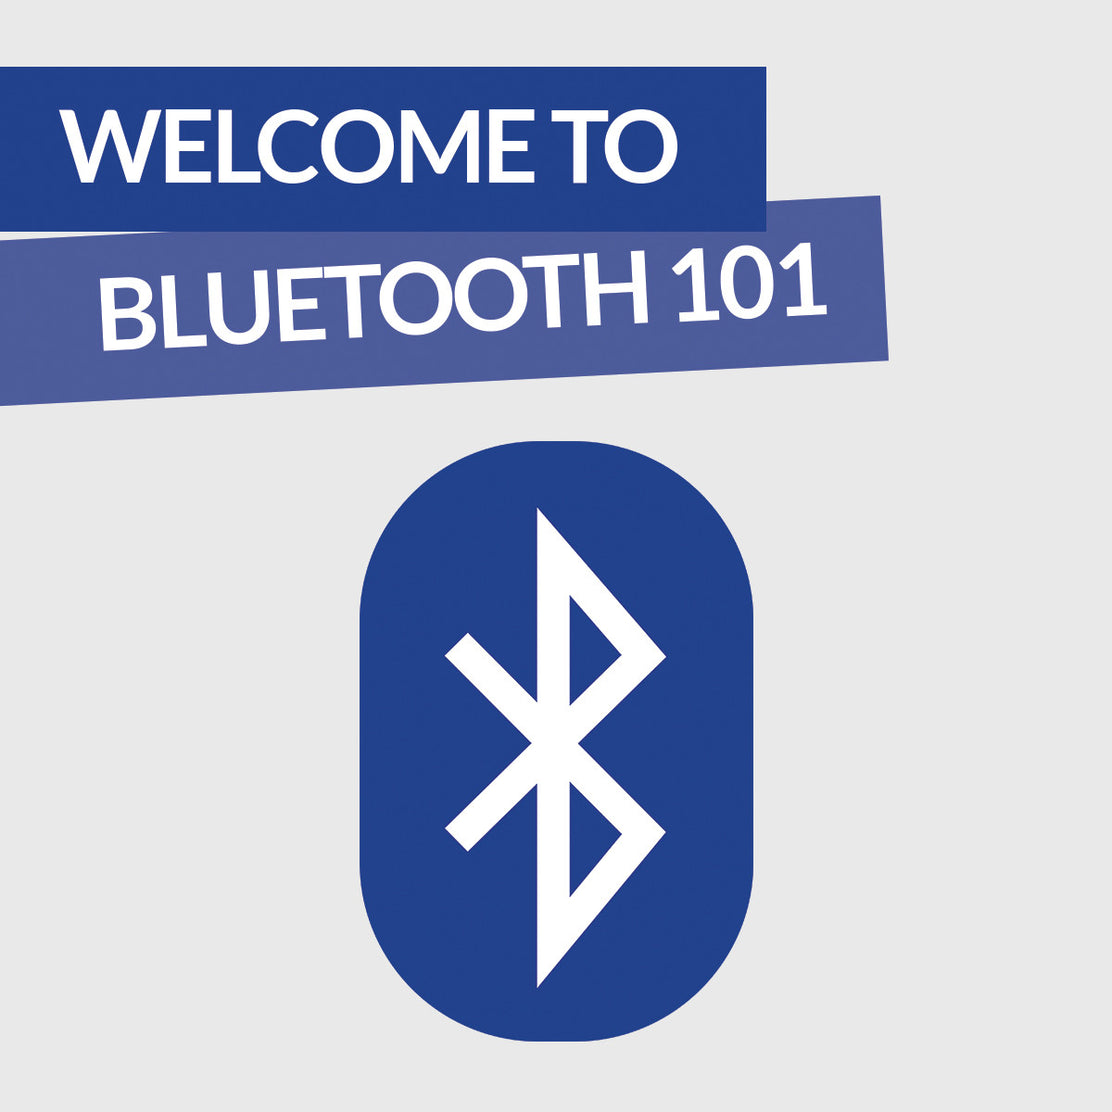 Welcome to Bluetooth 101